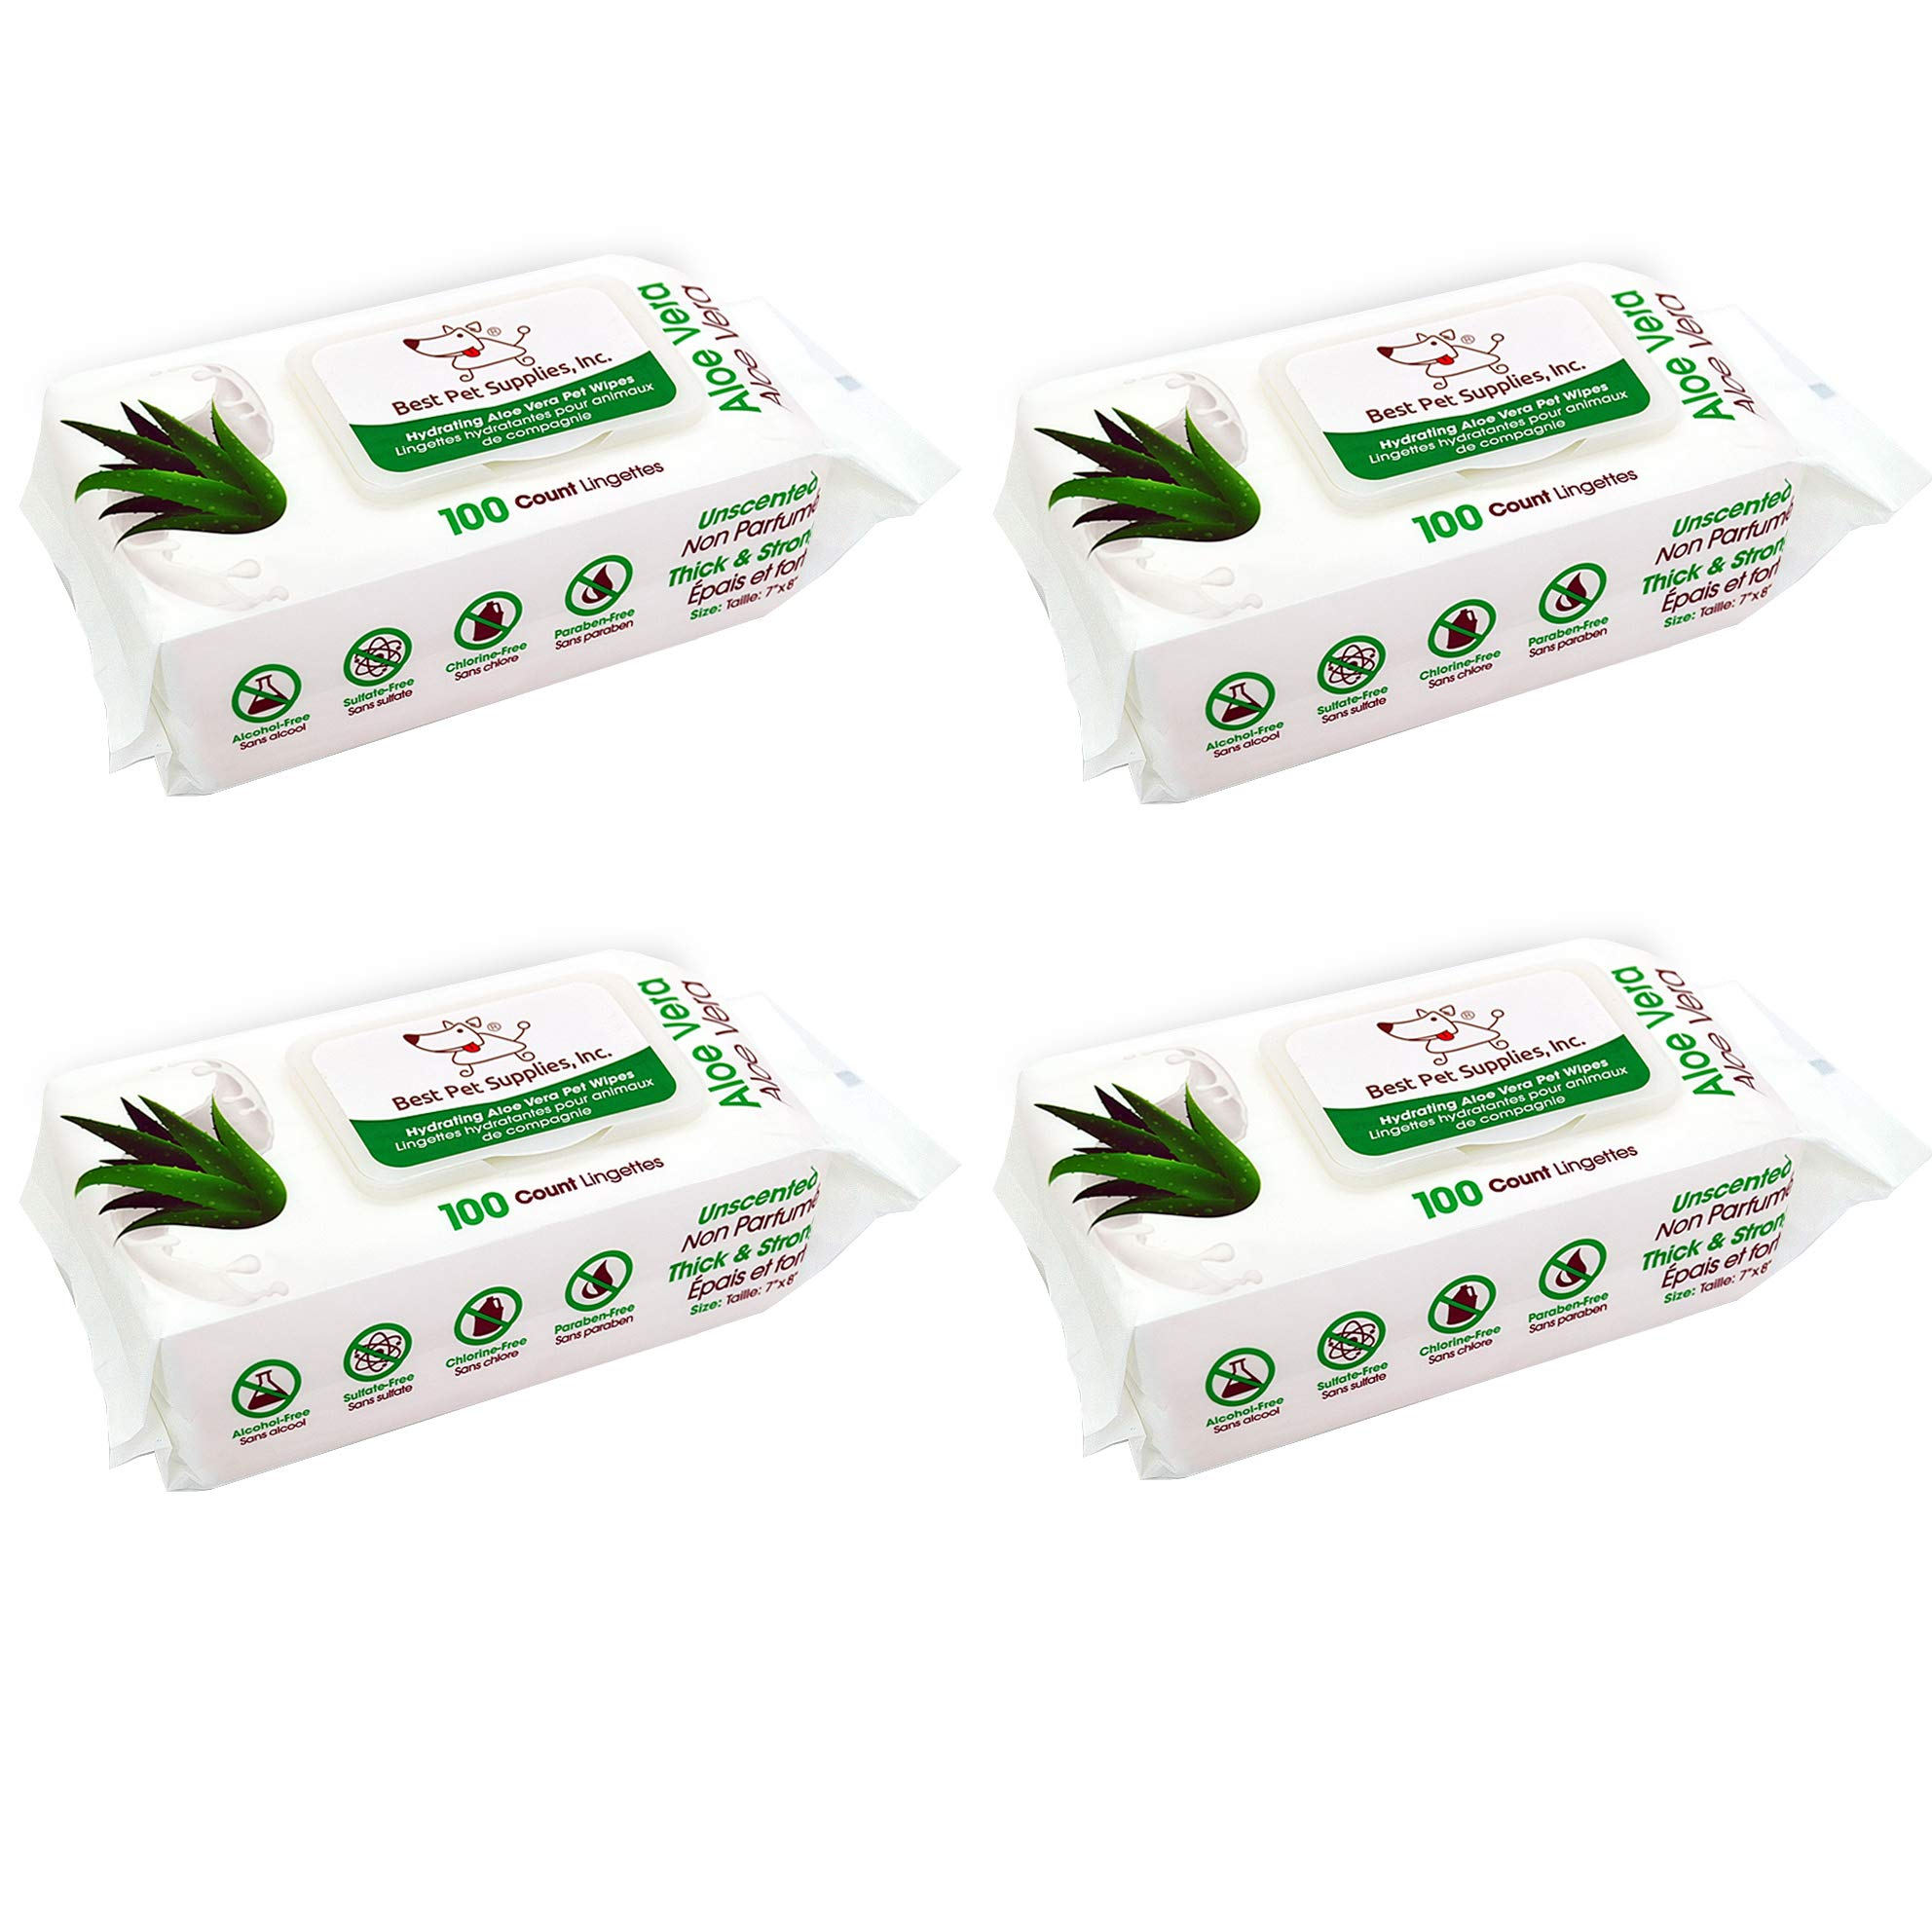 Best Pet Supplies WW-AV-400 Aloe Vera Deodorizing Pet Grooming Wipes